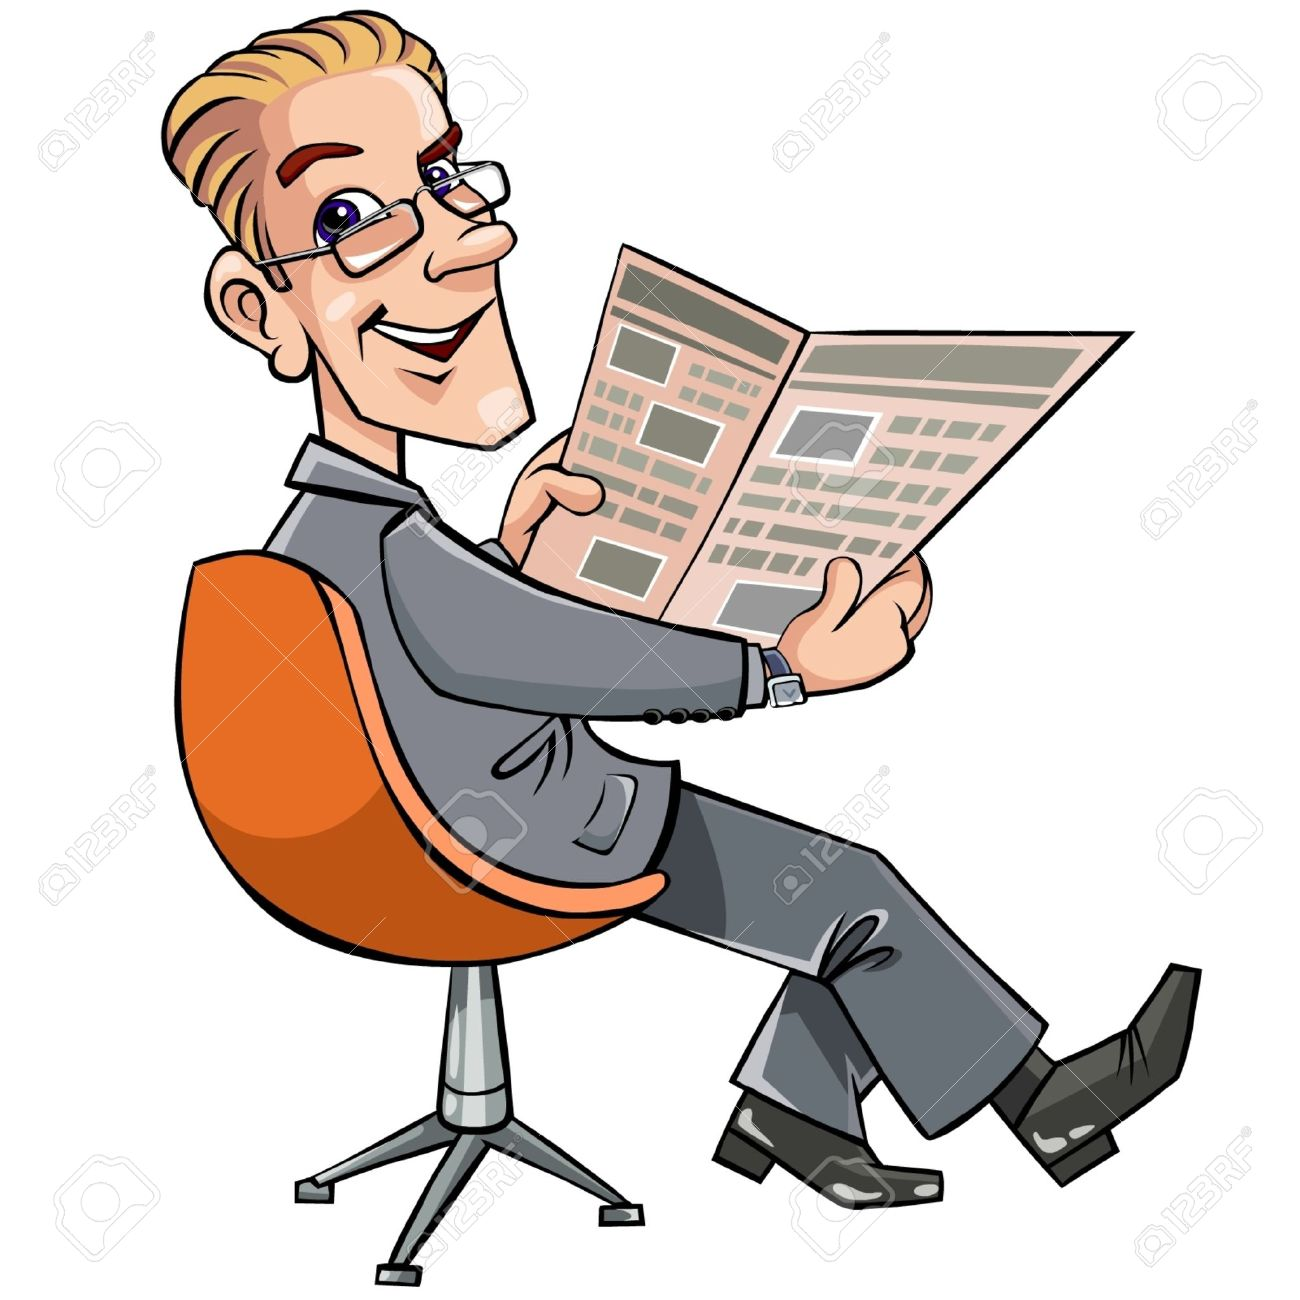 Reading Newspaper Clipart Png.